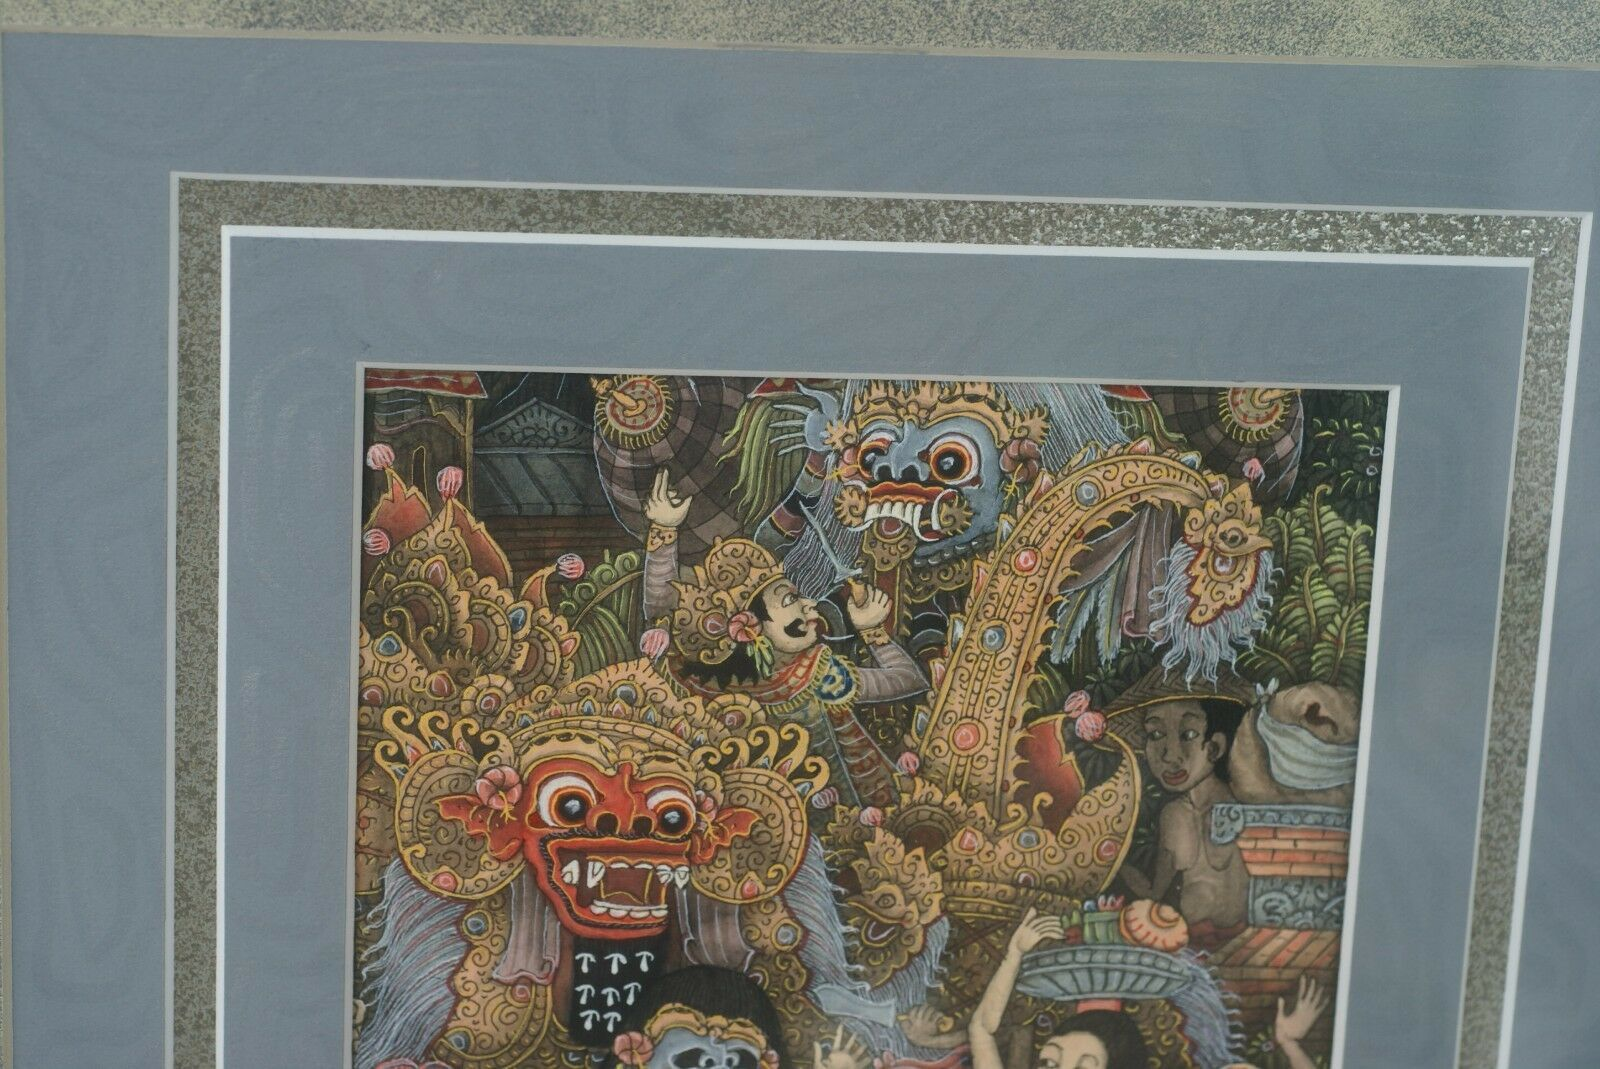 ORIGINAL DETAILED FRAMED MINIATURE TRADITIONAL BALINESE UBUD ART INK PAINTING -